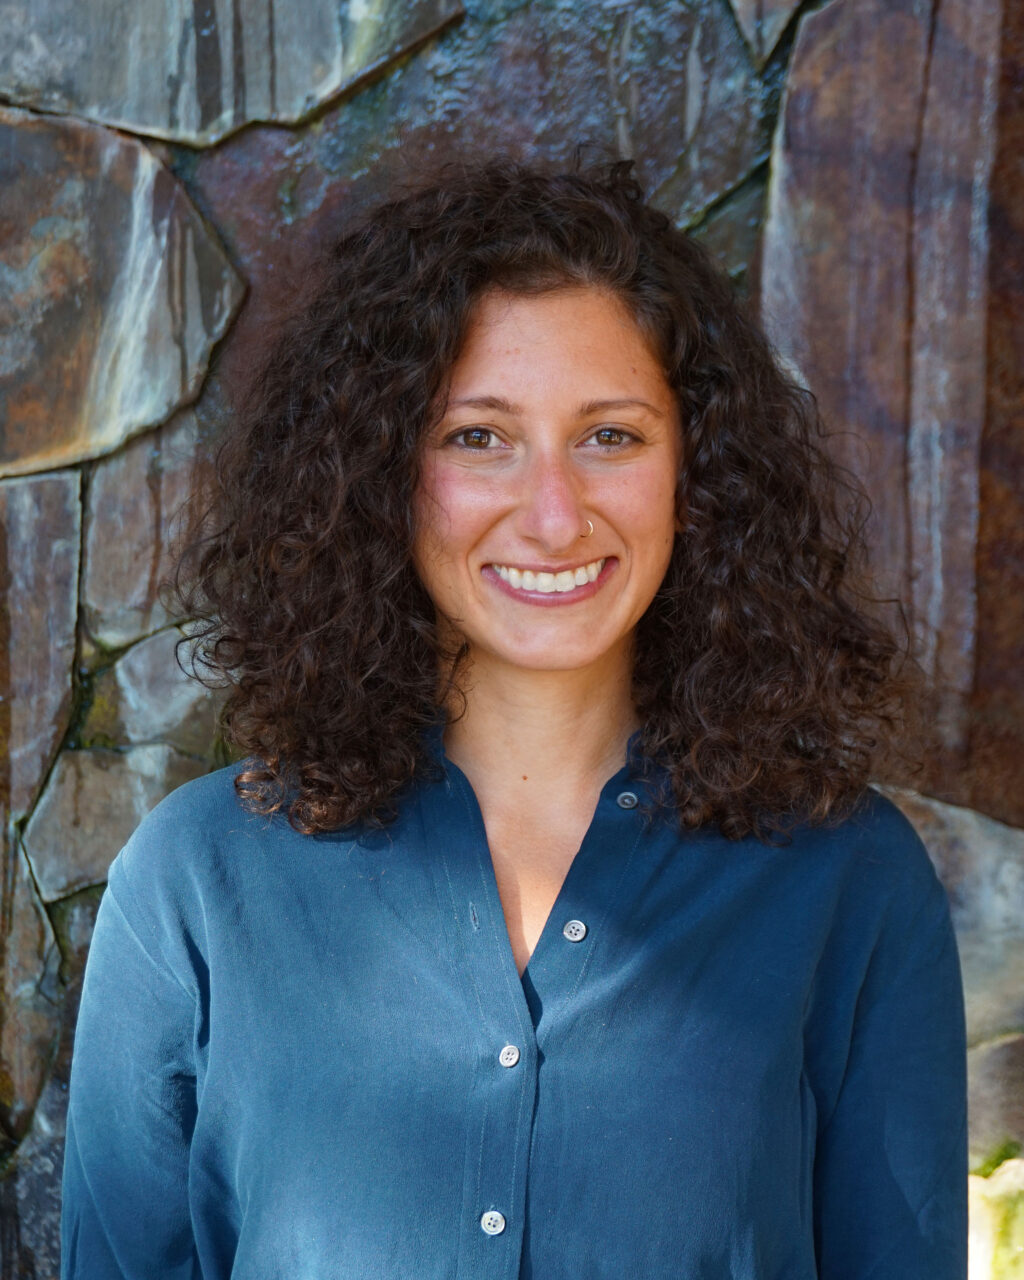 Sara Rapaport, ND, LMT - Naturopathic Doctor, Licensed Massage Therapist